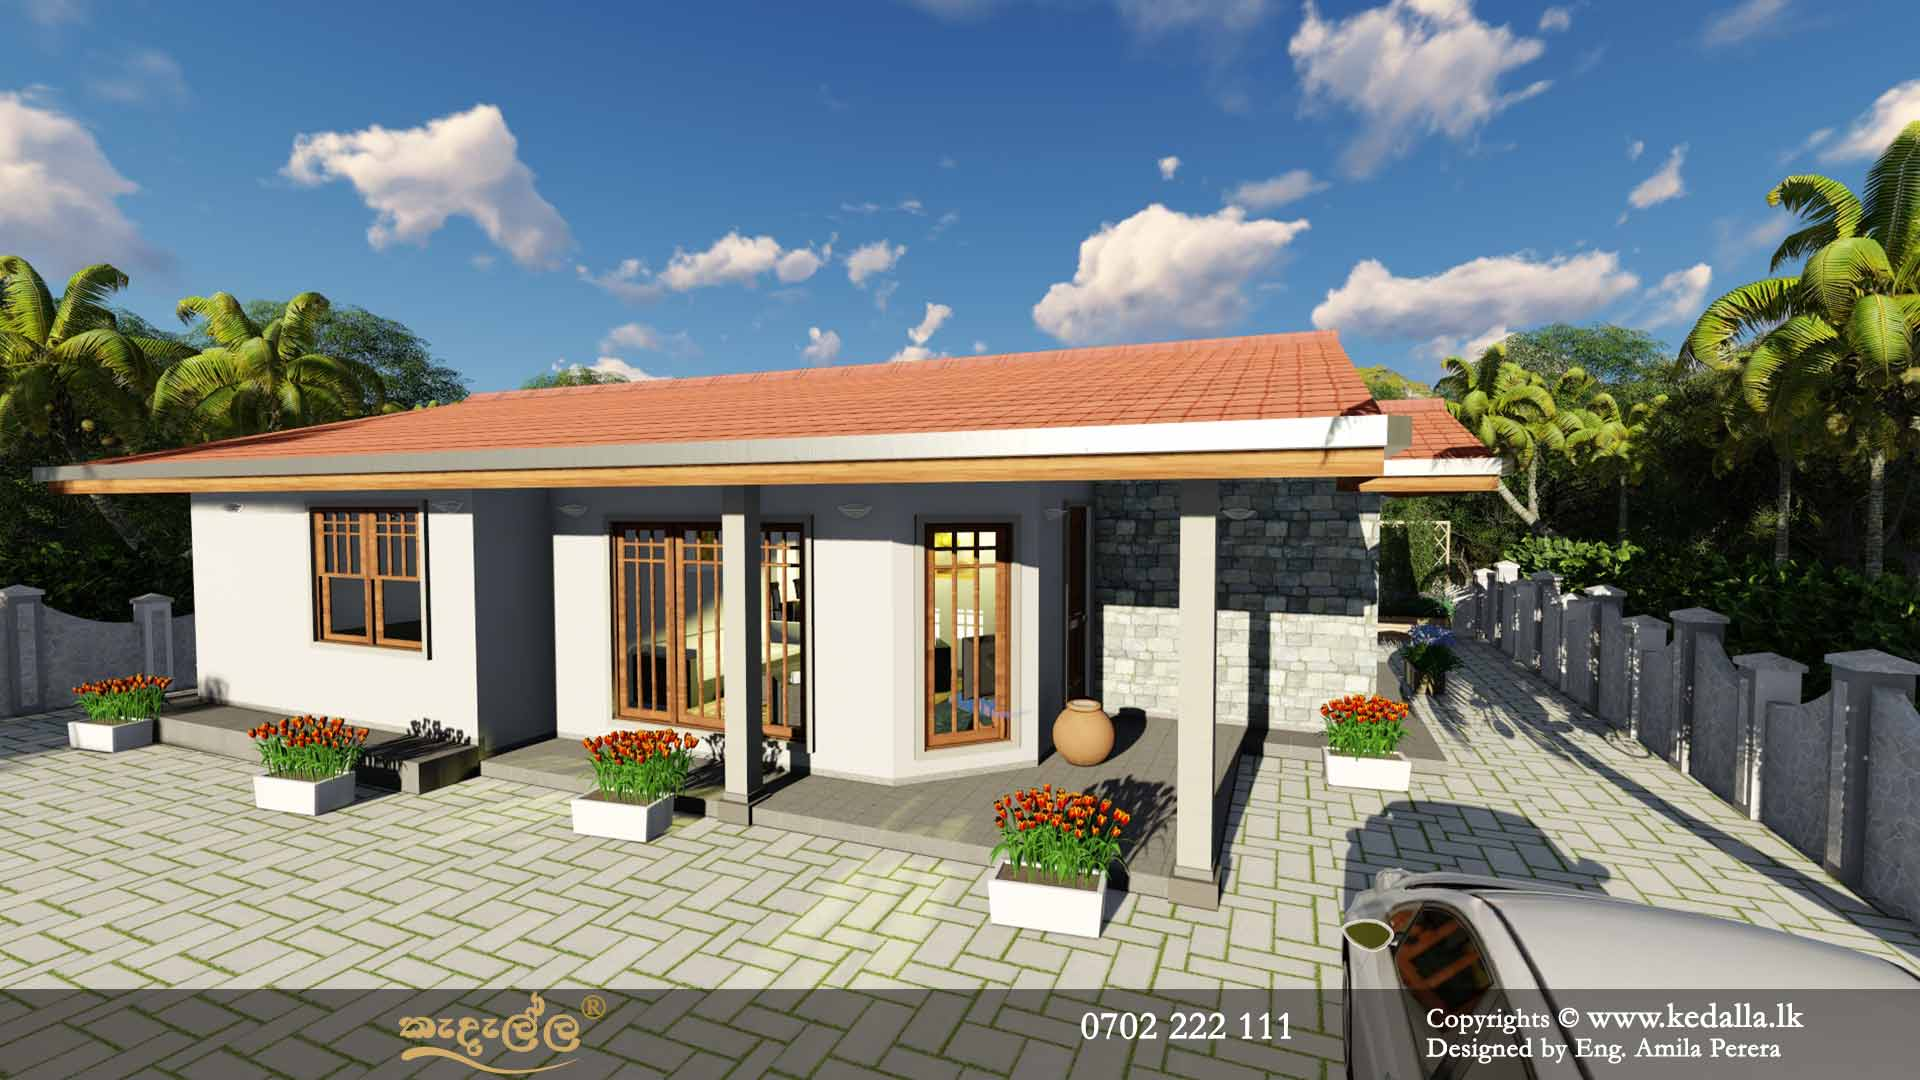 4 Bedroom Single Story House Plans in Sri Lanka - Designed by archtects in Colombo